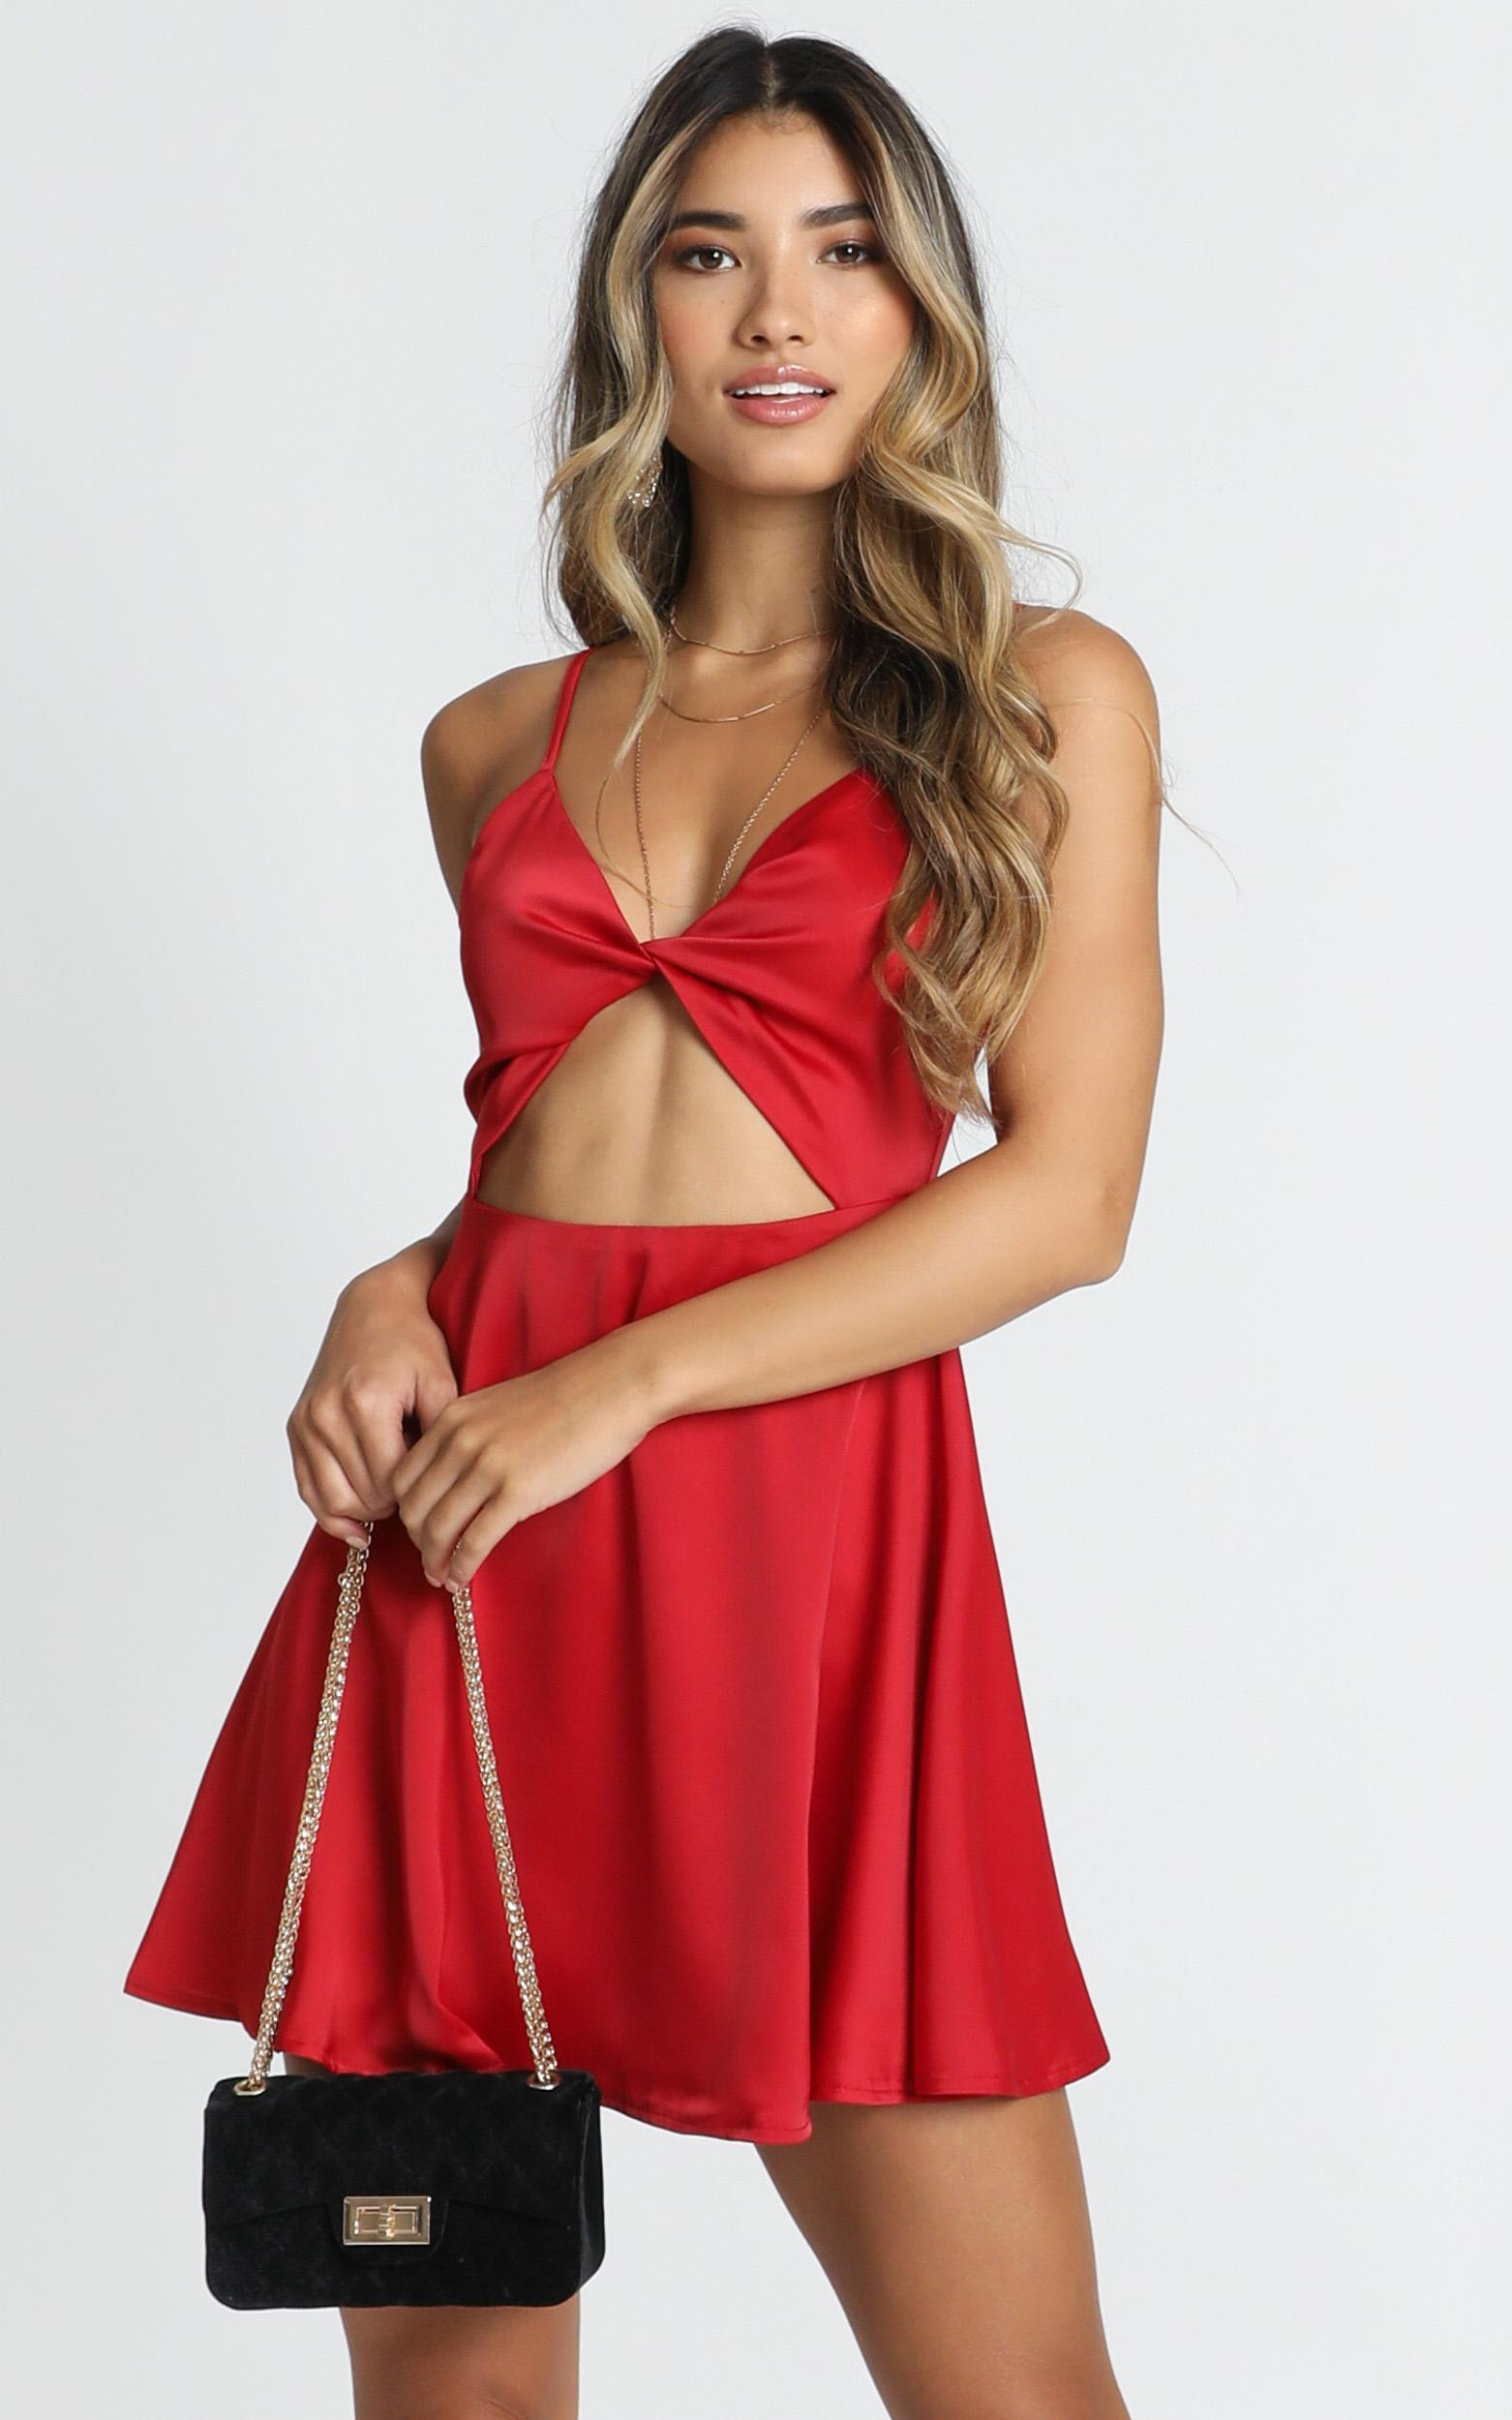 Hold You In my Palm Dress In red satin - 14 (XL), Red, hi-res image number null